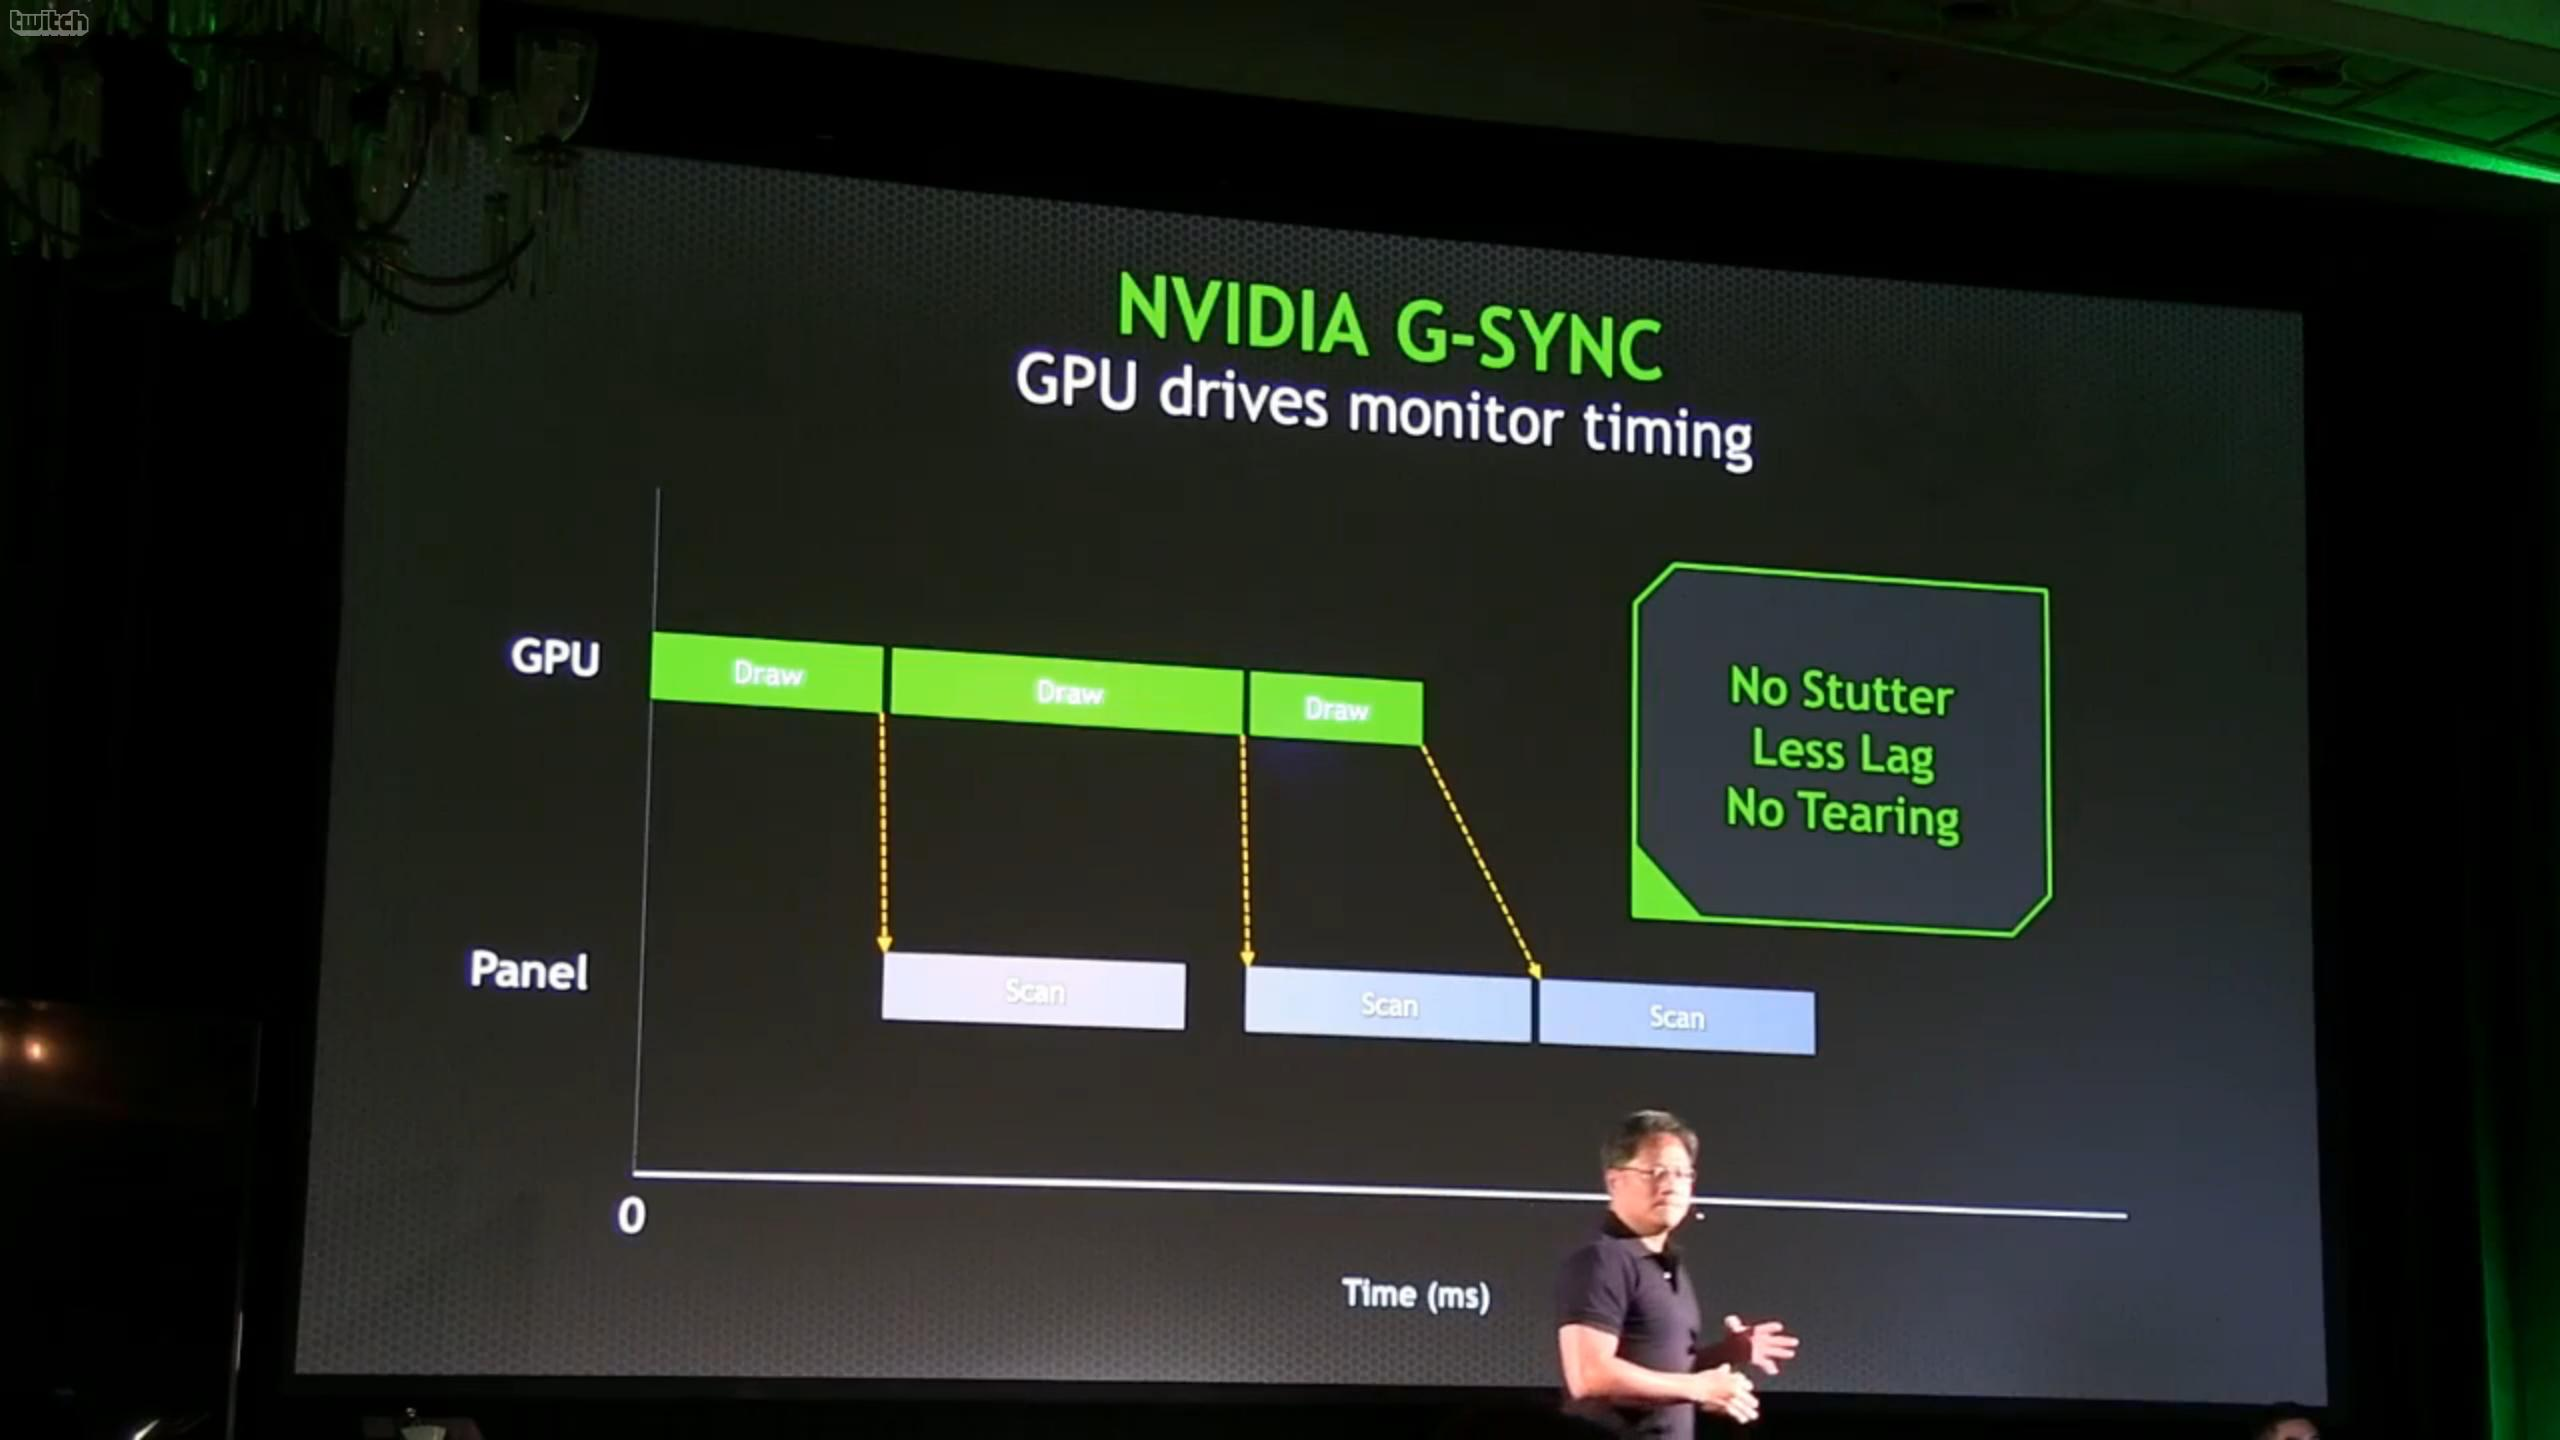 NVIDIA G Sync Technology Unveiled An End To LAG Stutter And Tearing For PC Gamers